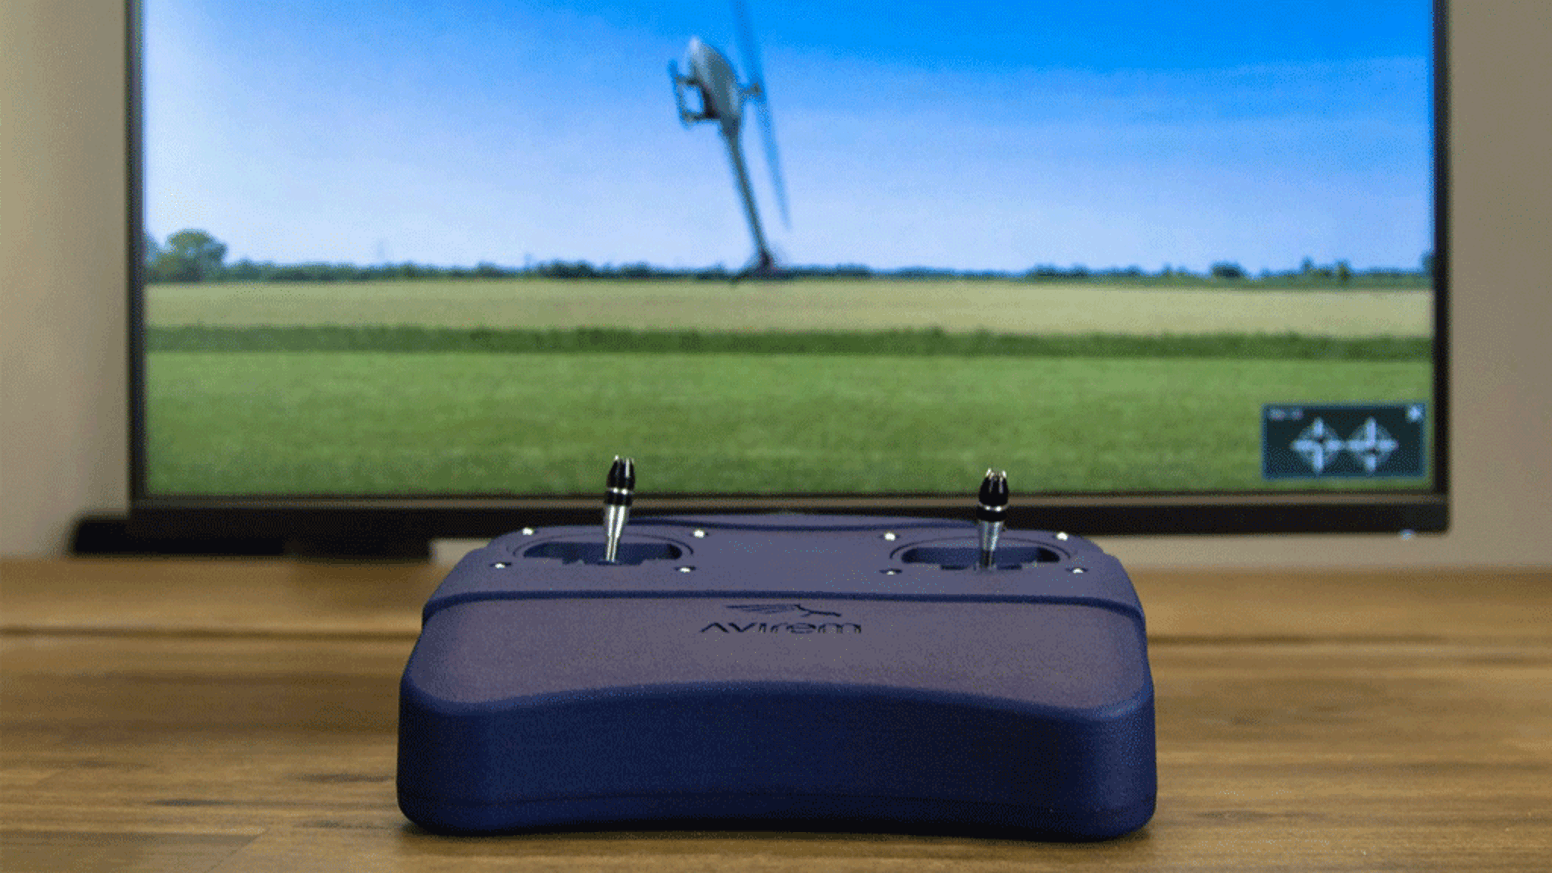 Learn to master flying by watching manoeuvers and feeling the control sticks. The StickMover guides you to flying!